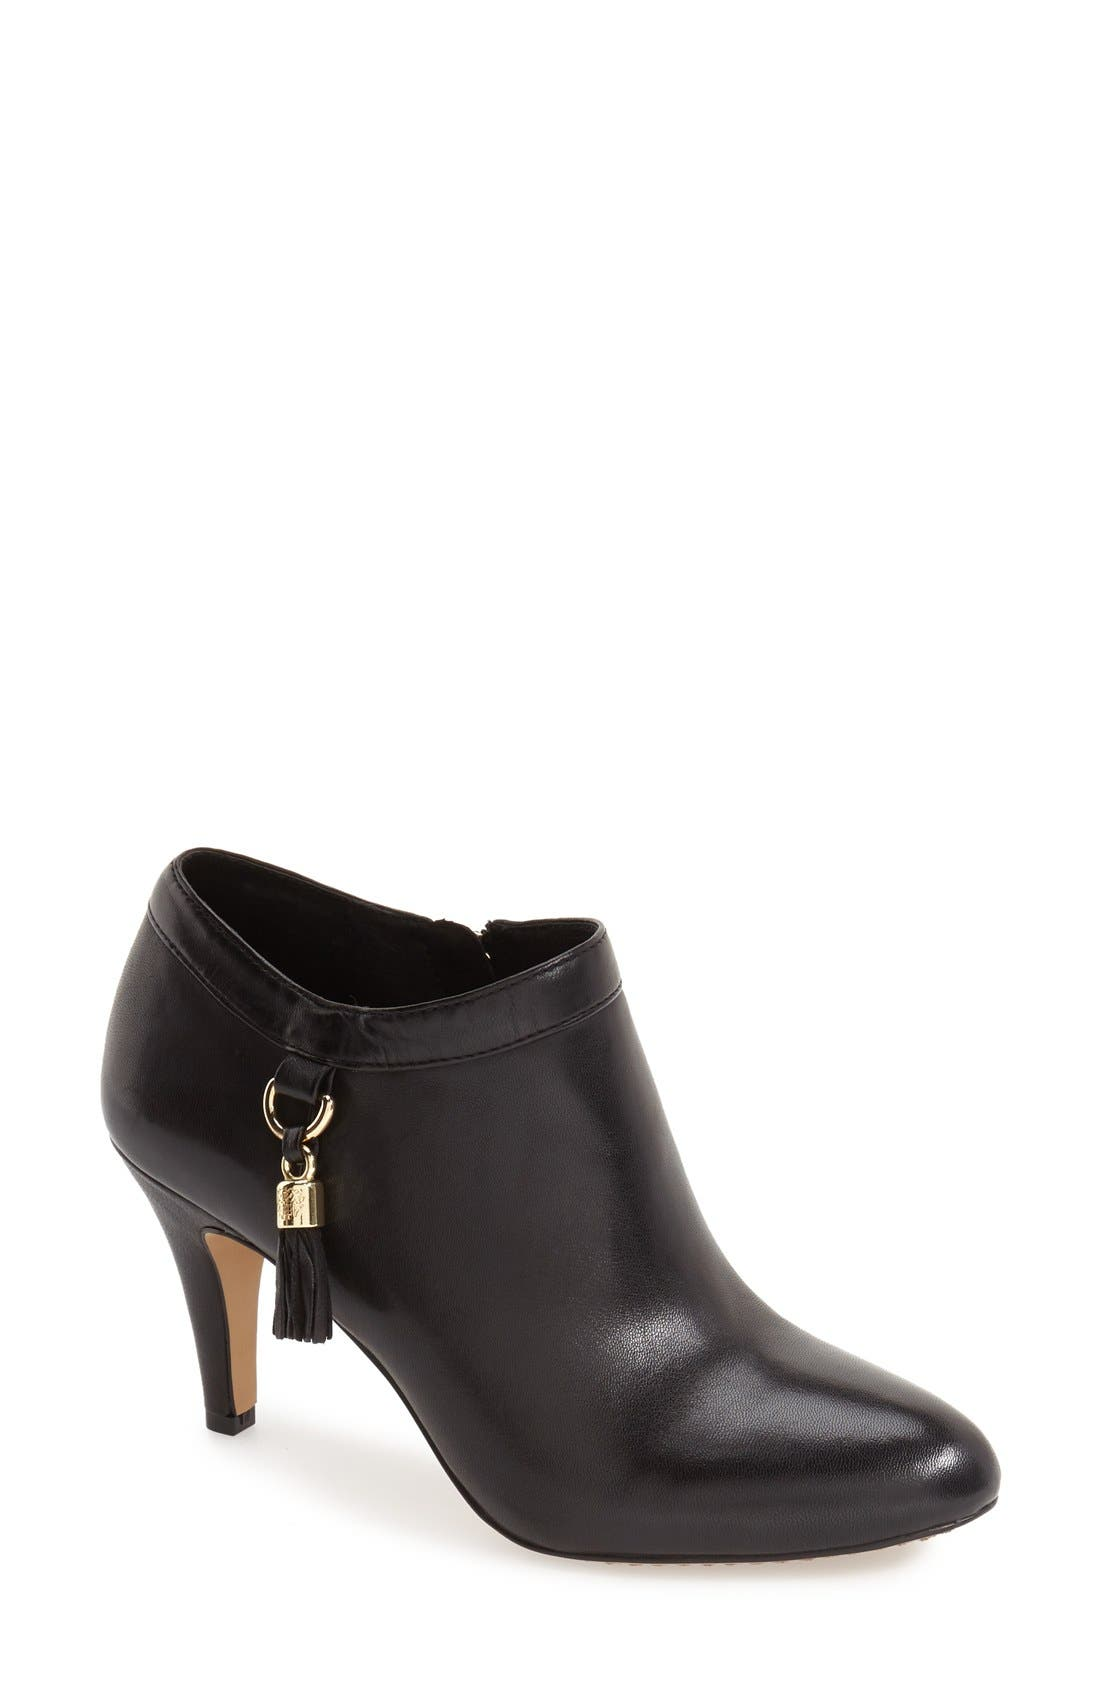 Alternate Image 1 Selected - Vince Camuto 'Vecka' Bootie (Women)